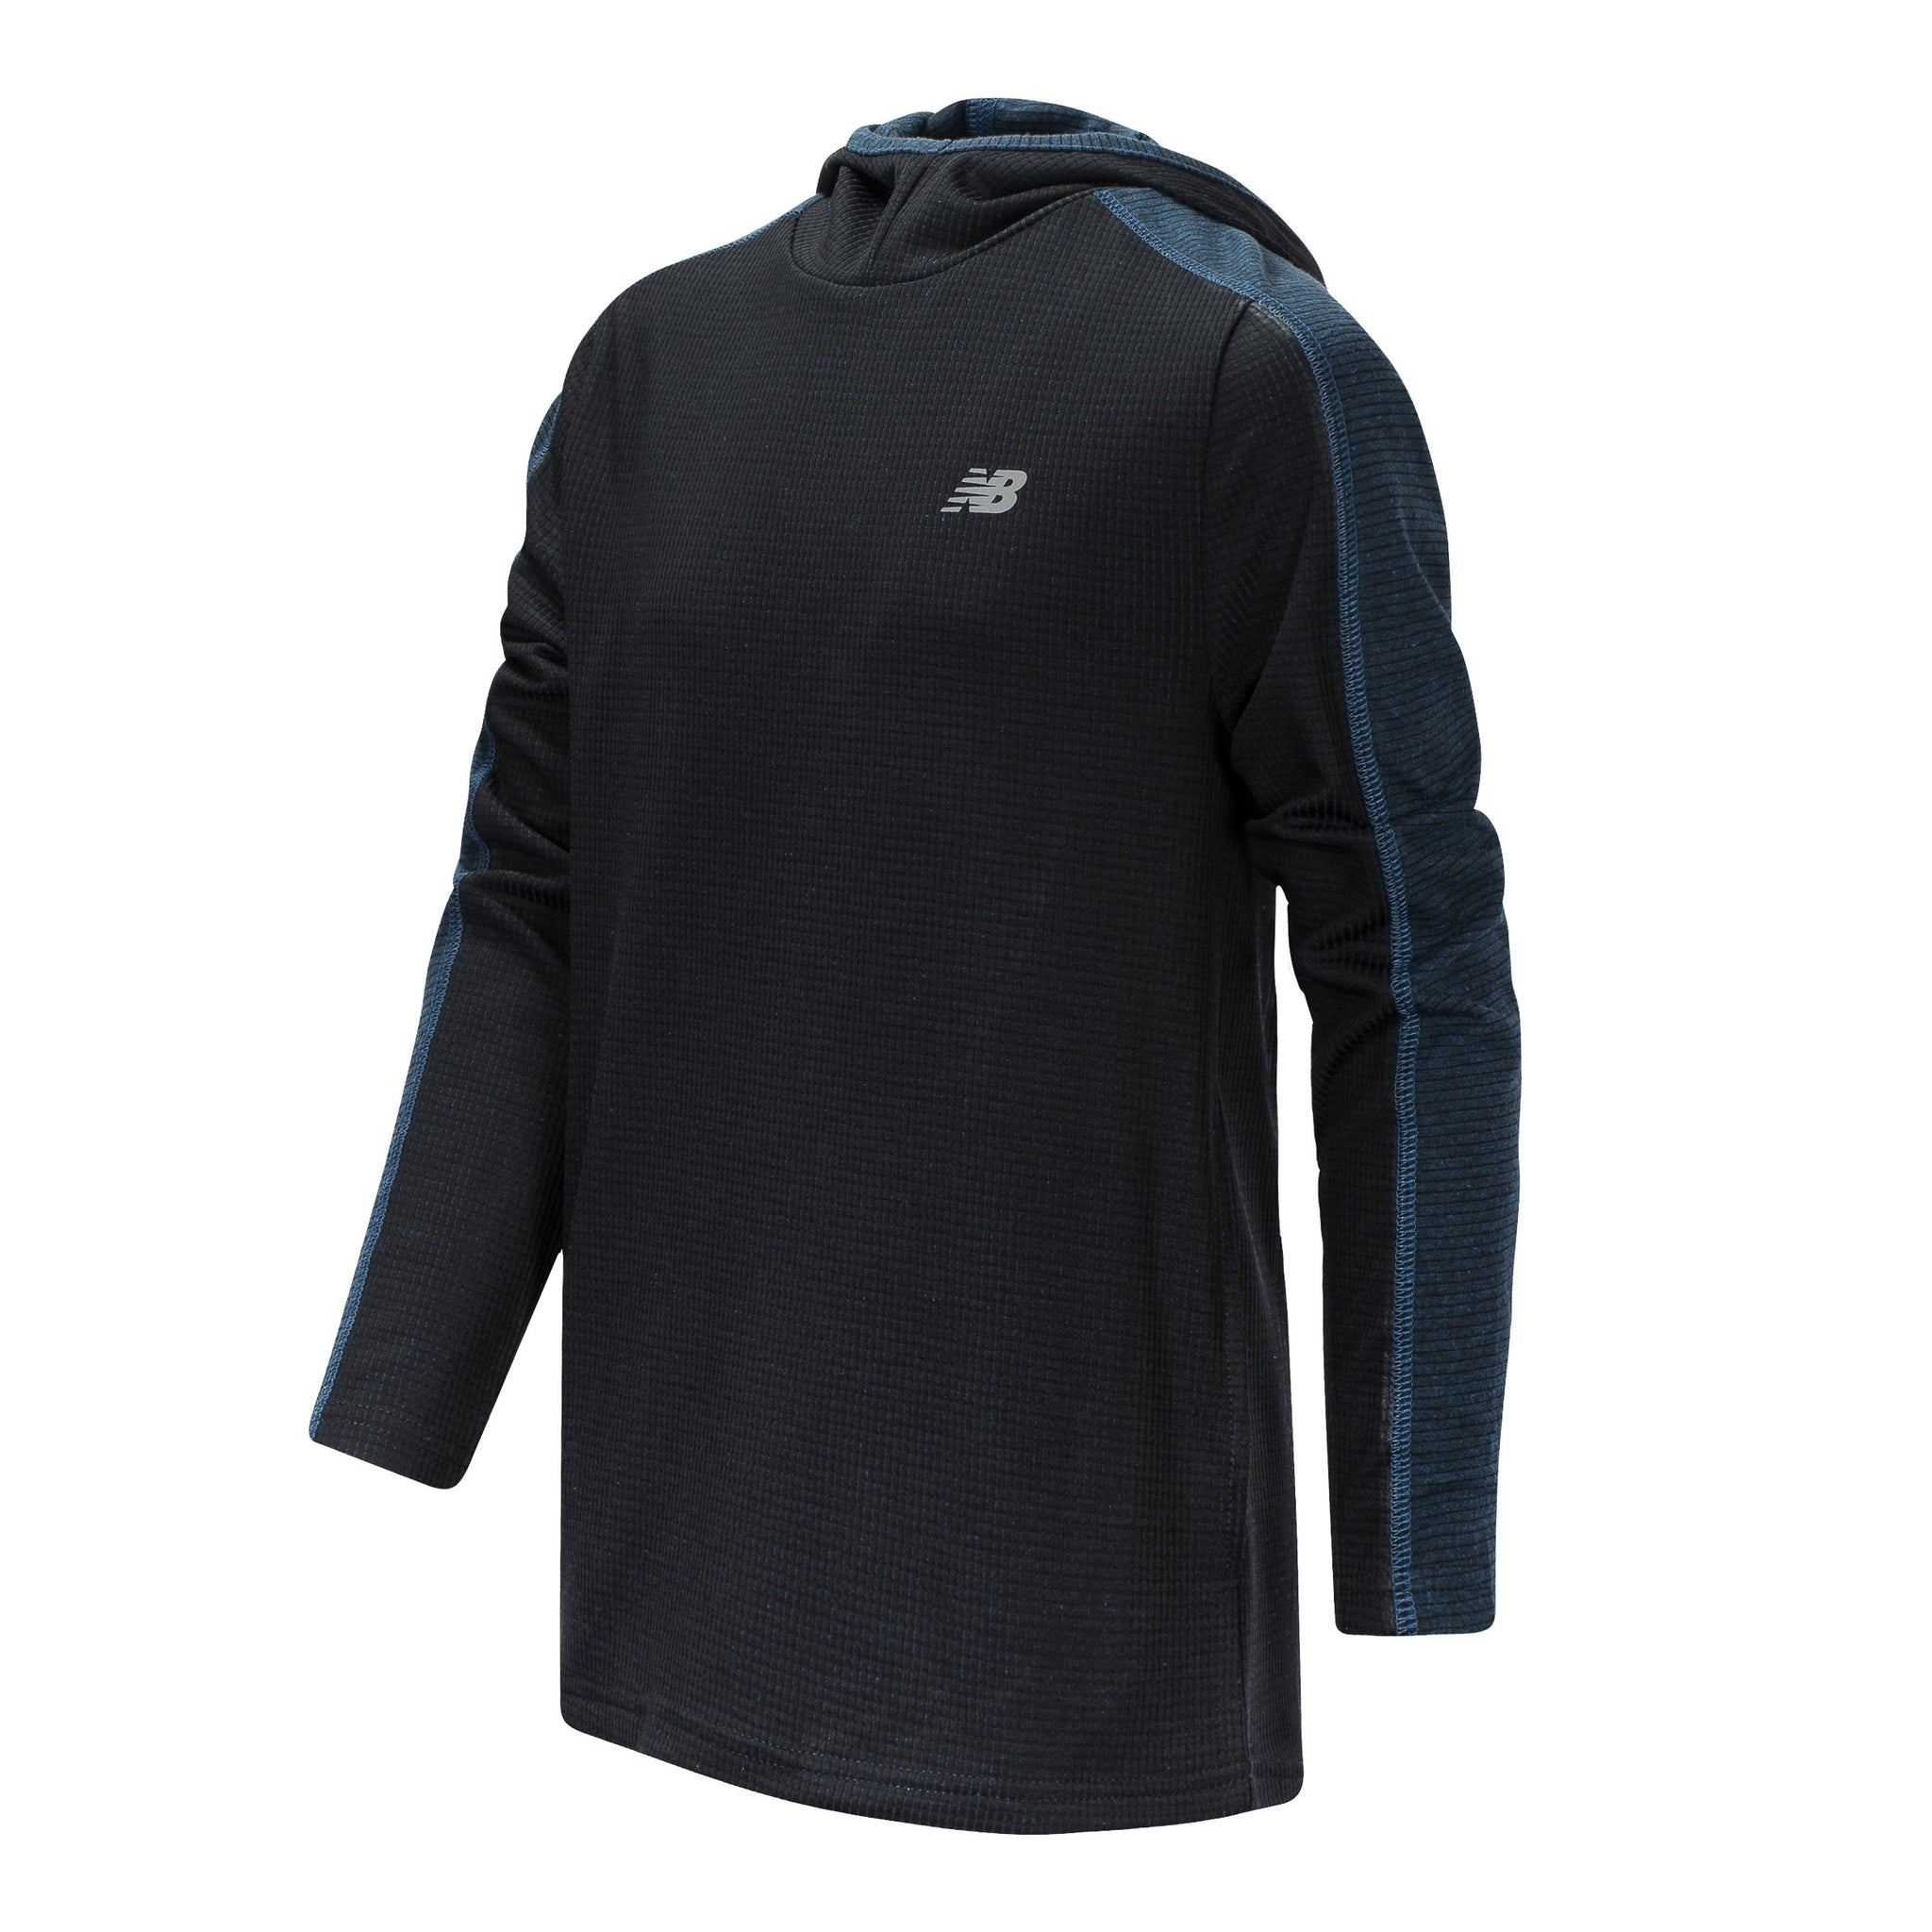 Boys' New Balance Black and Lapis Blue Hooded Pullover